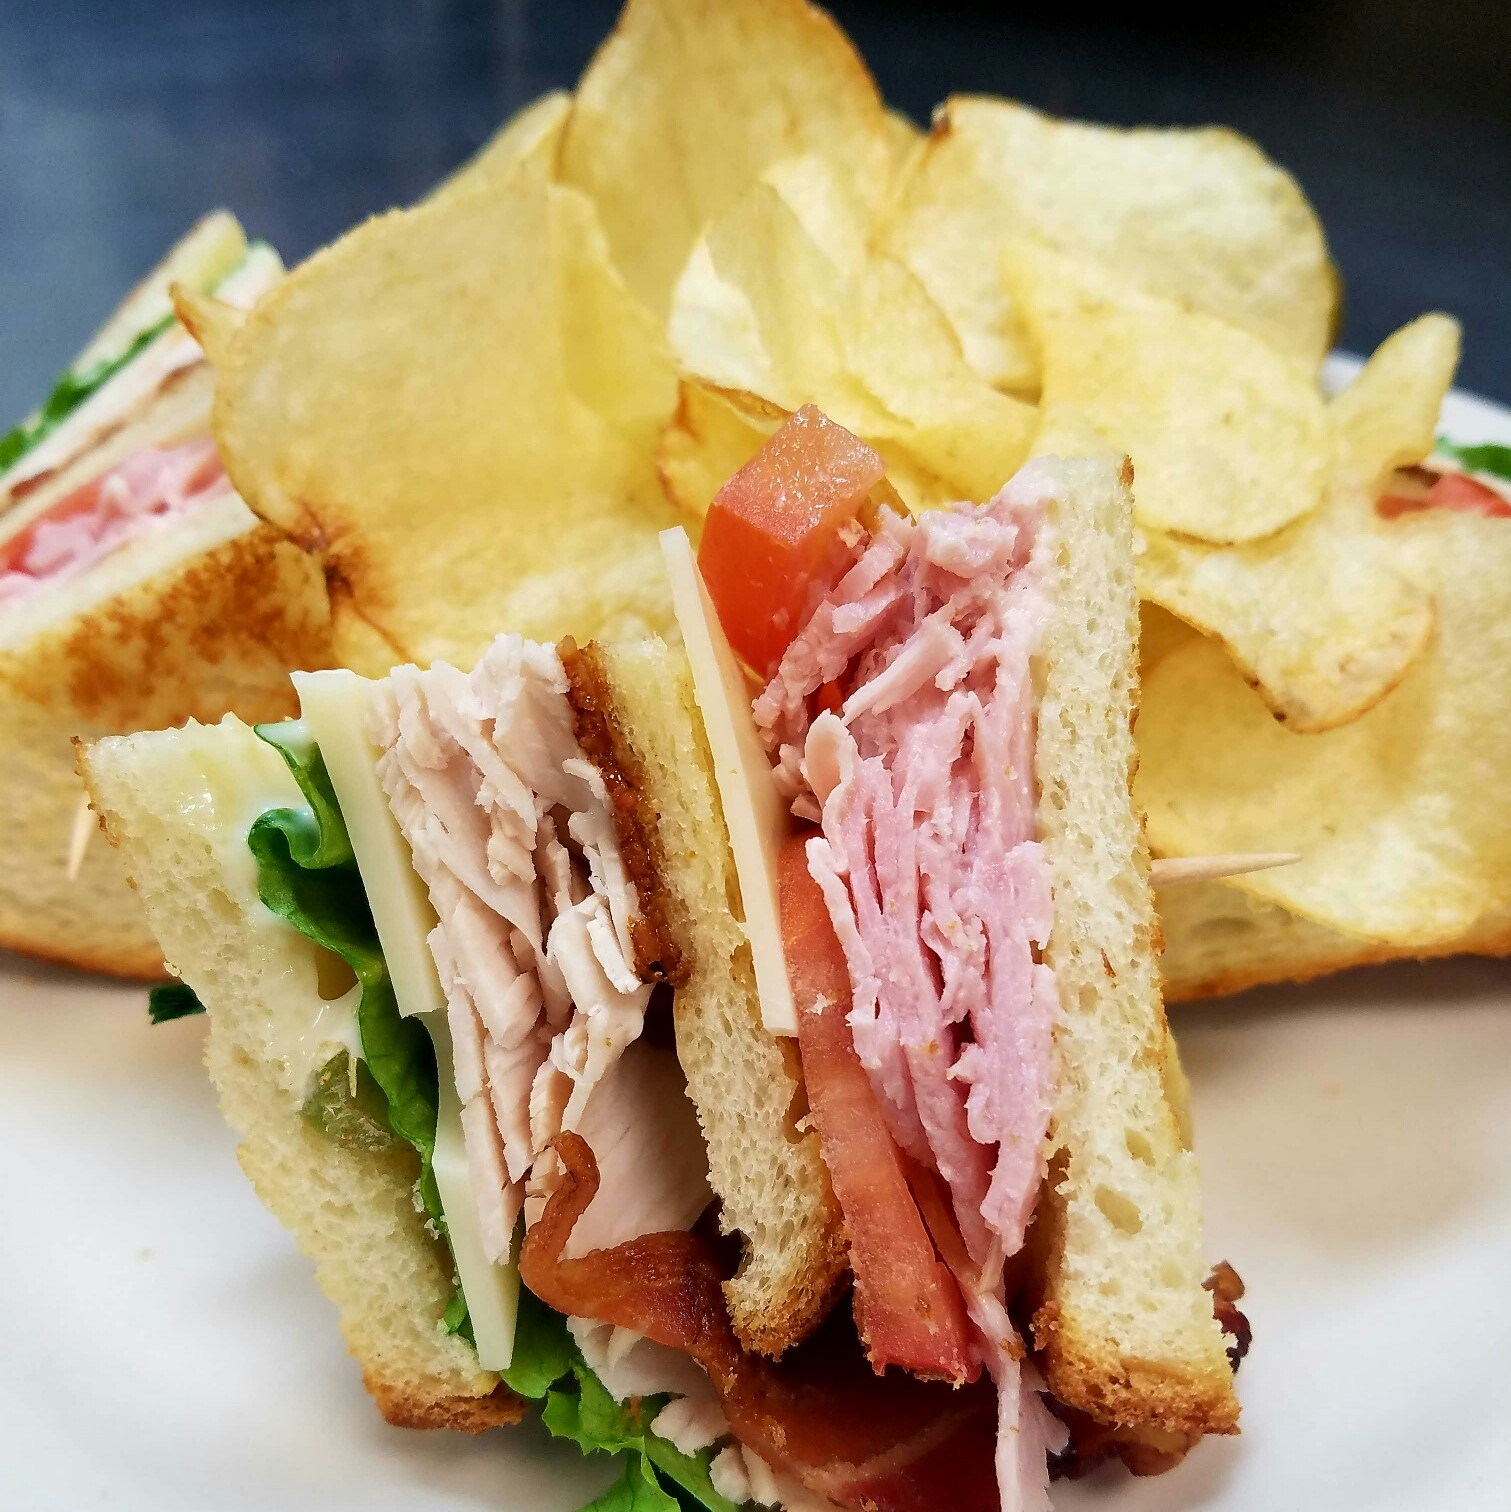 Turkey and ham club sandwitch with lettuce, tomato, cheese and bacon with potato chips